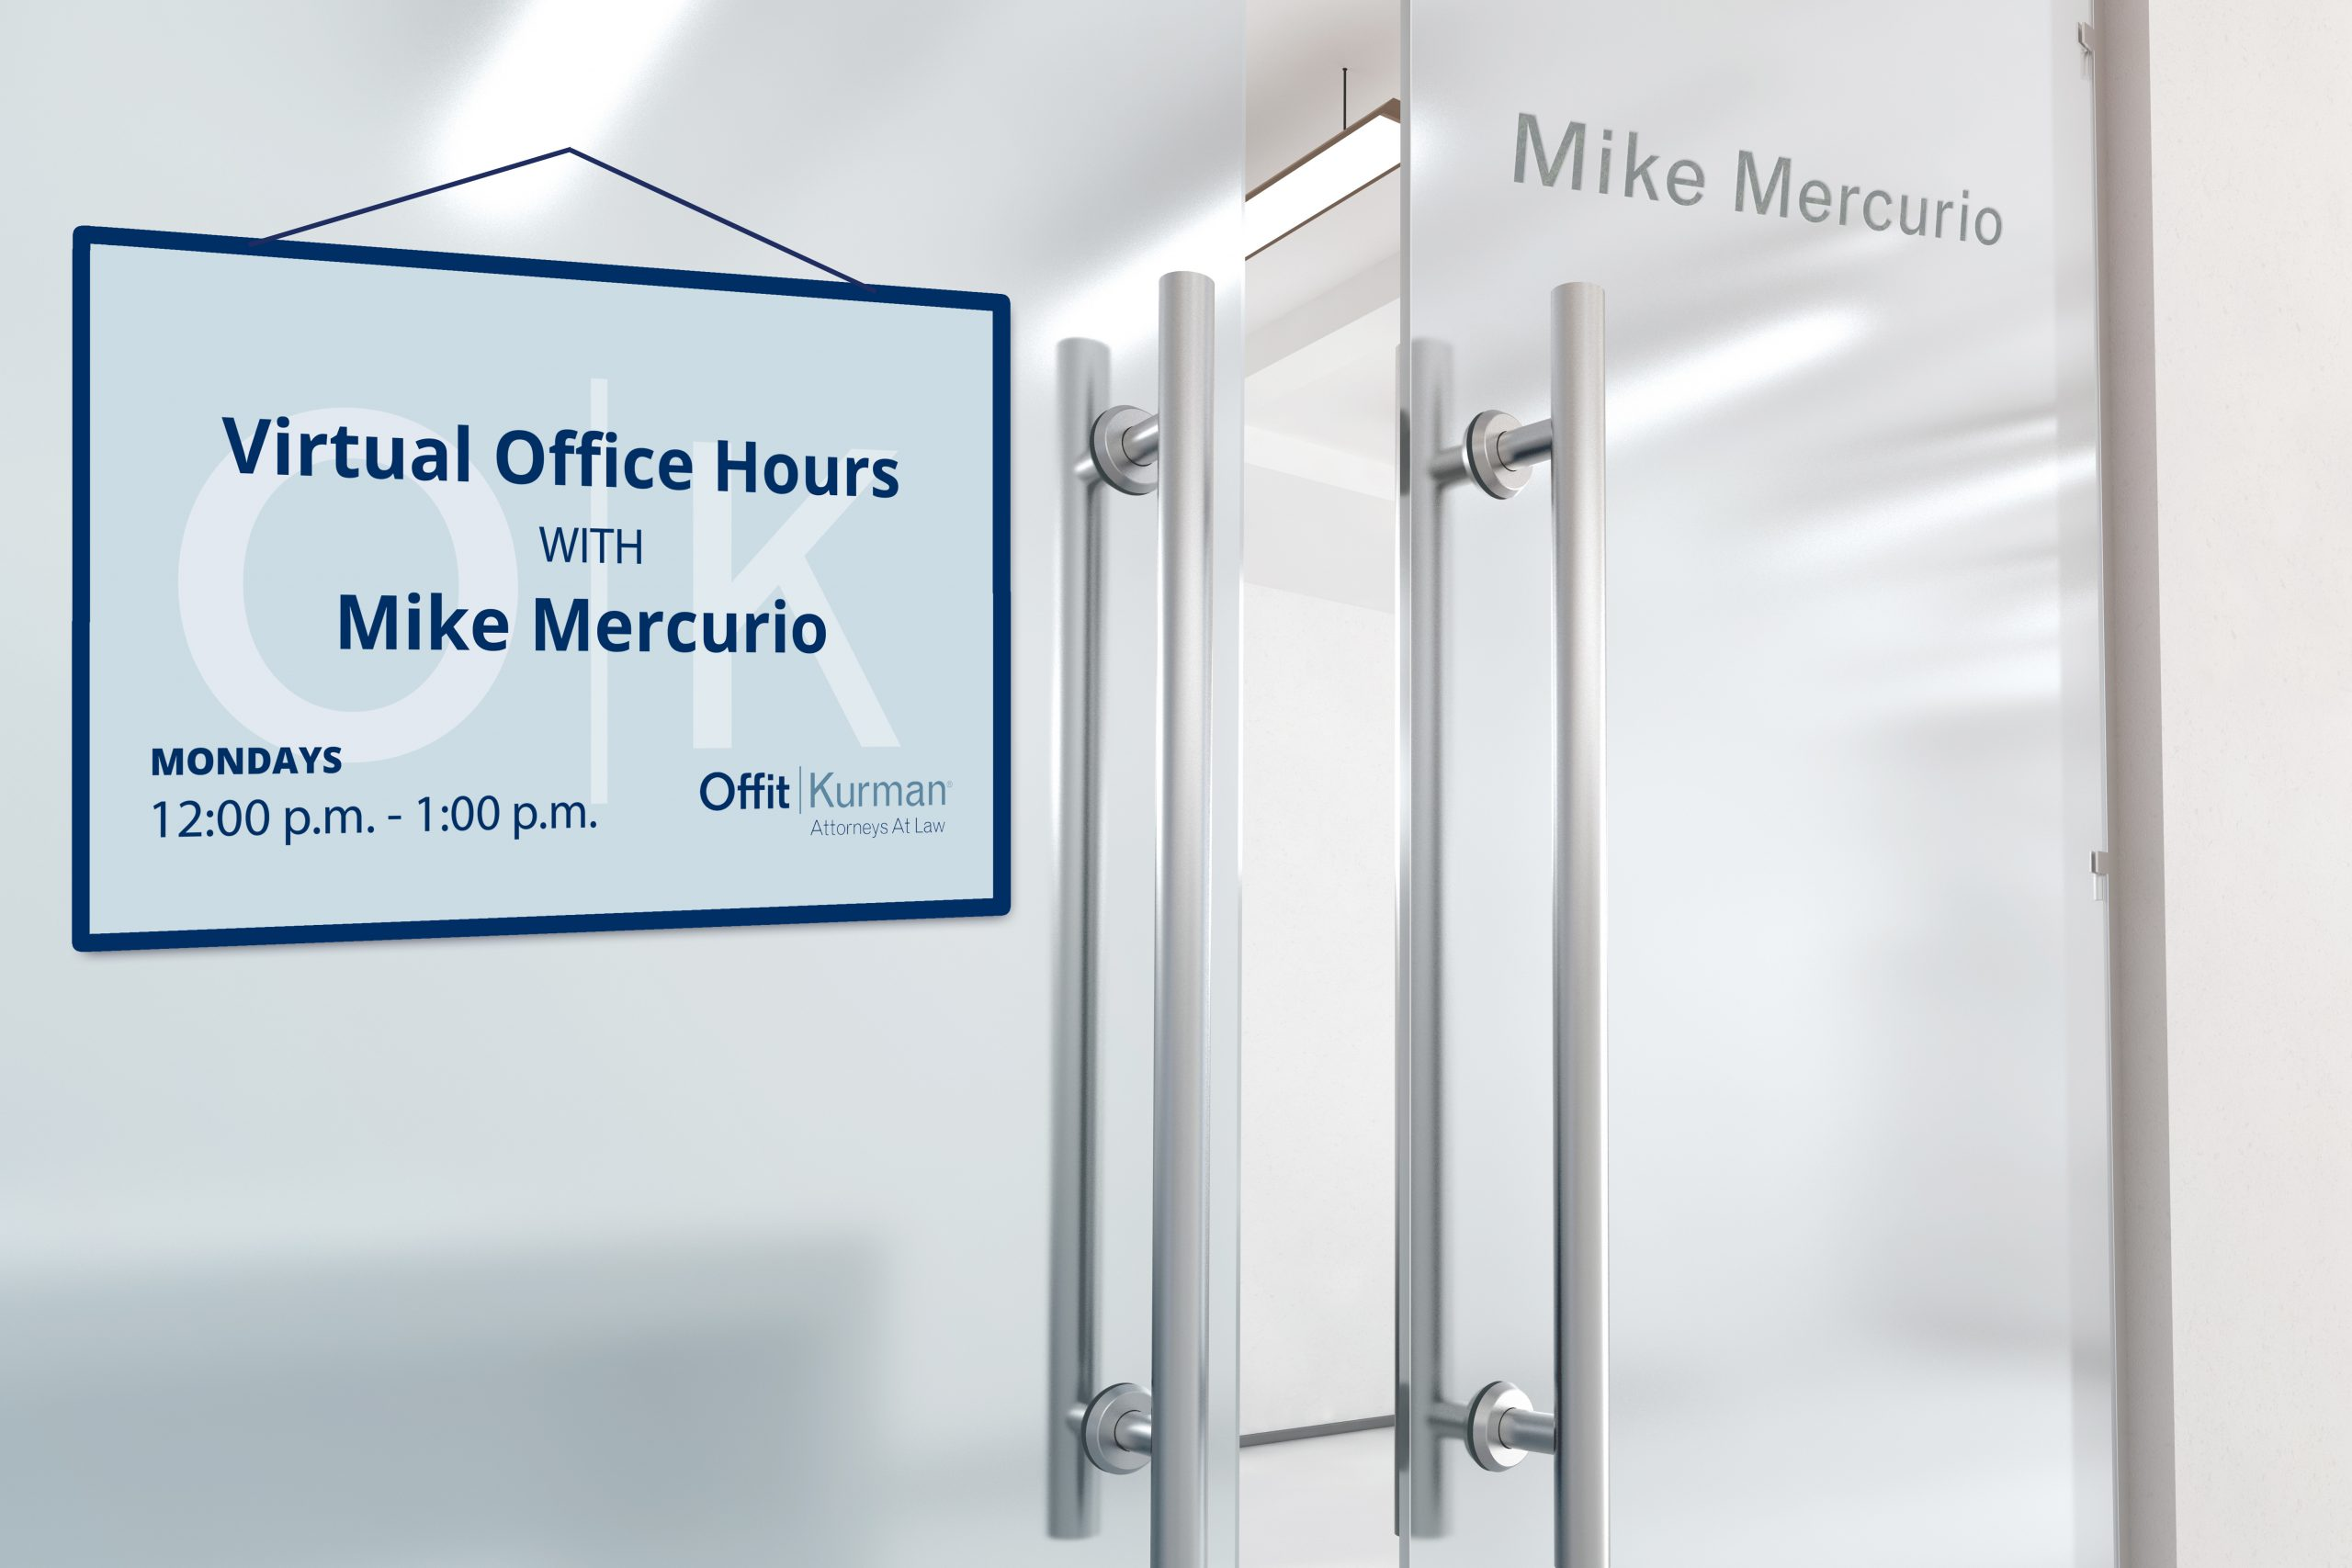 Virtual Office Hours with door nameb